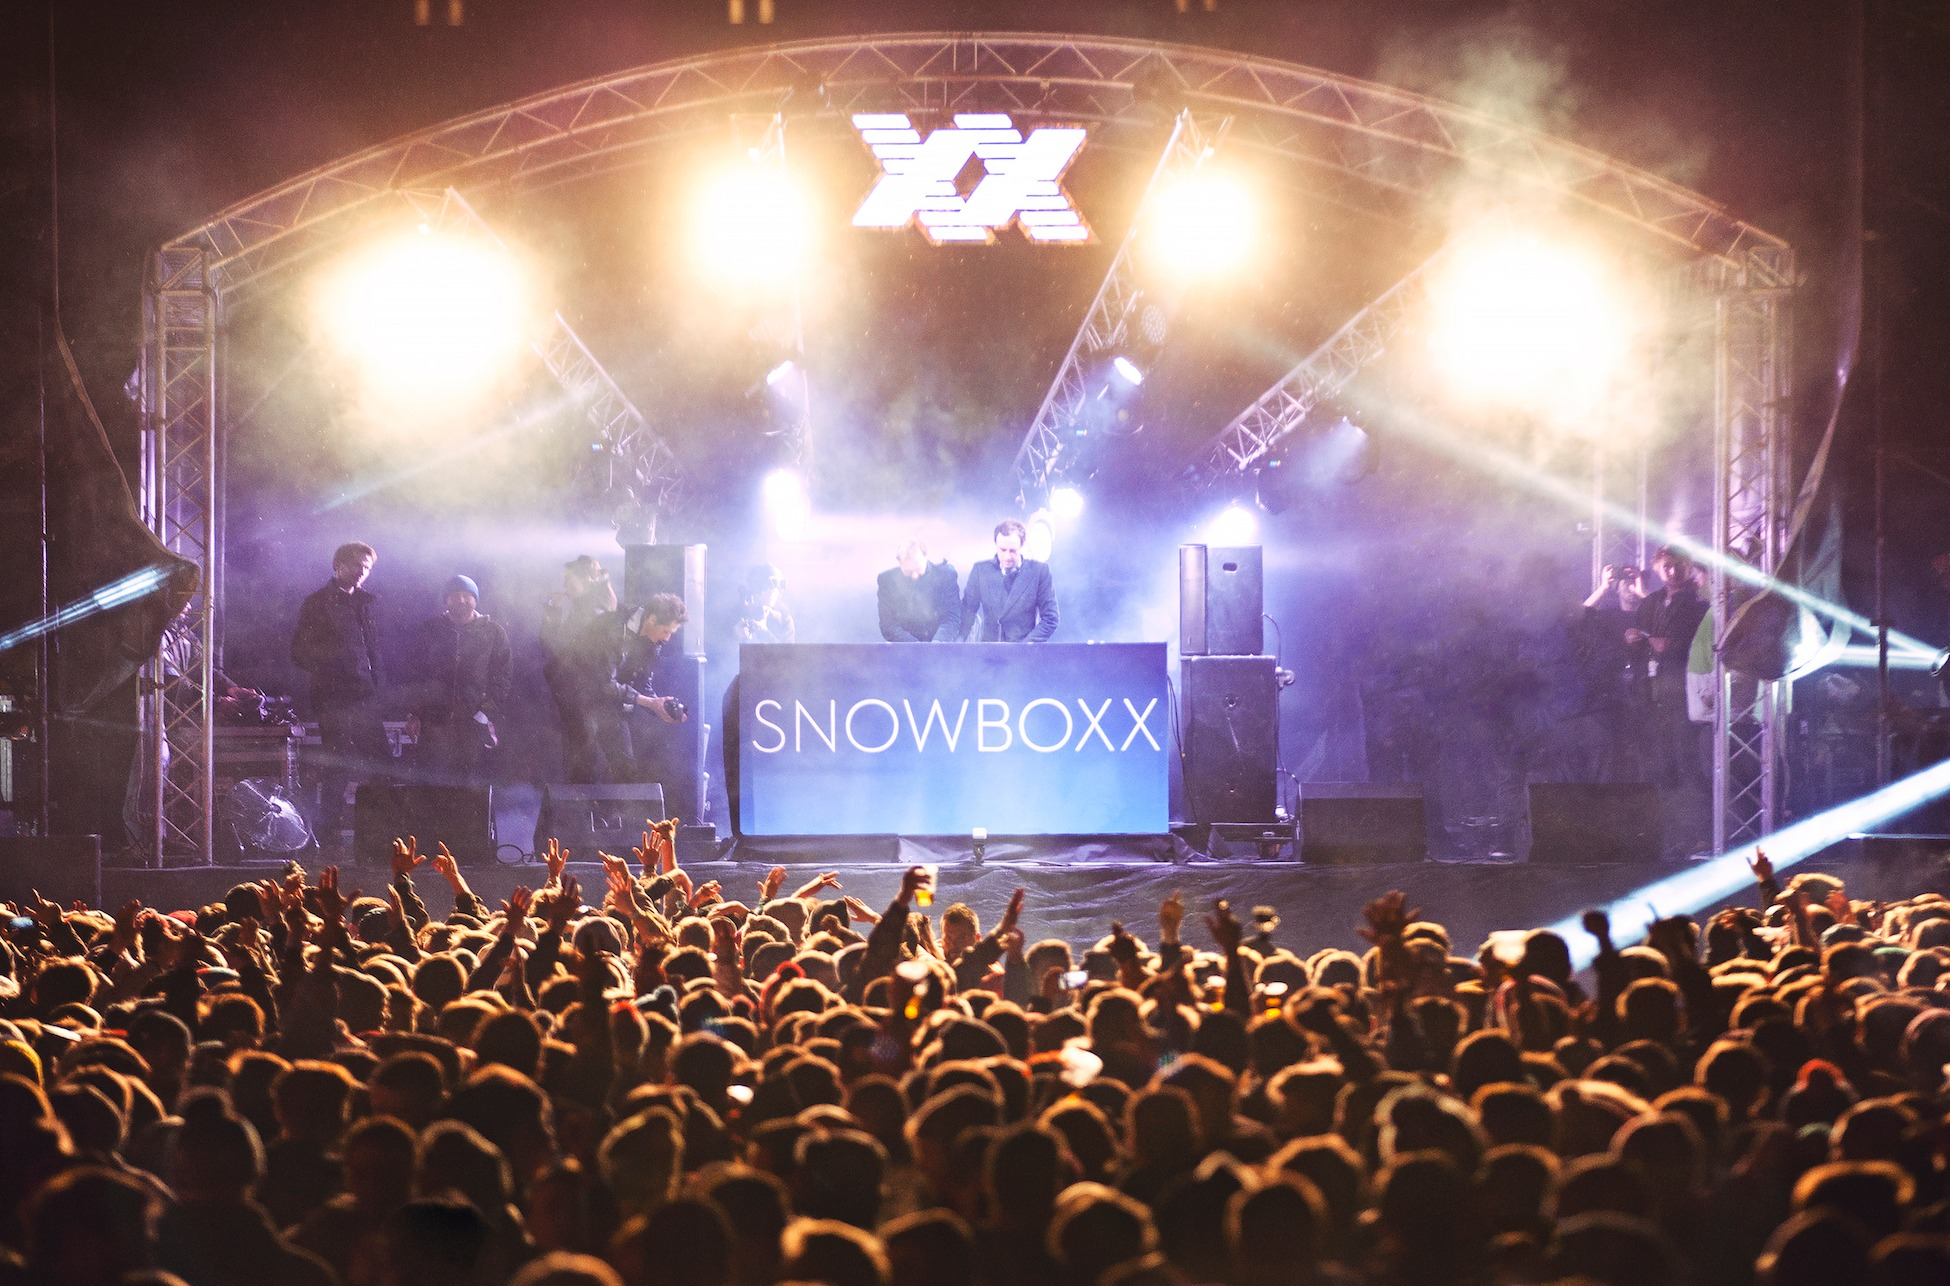 Crowd dancing in front of DJ on stage at Snowboxx festival, Alvoriaz